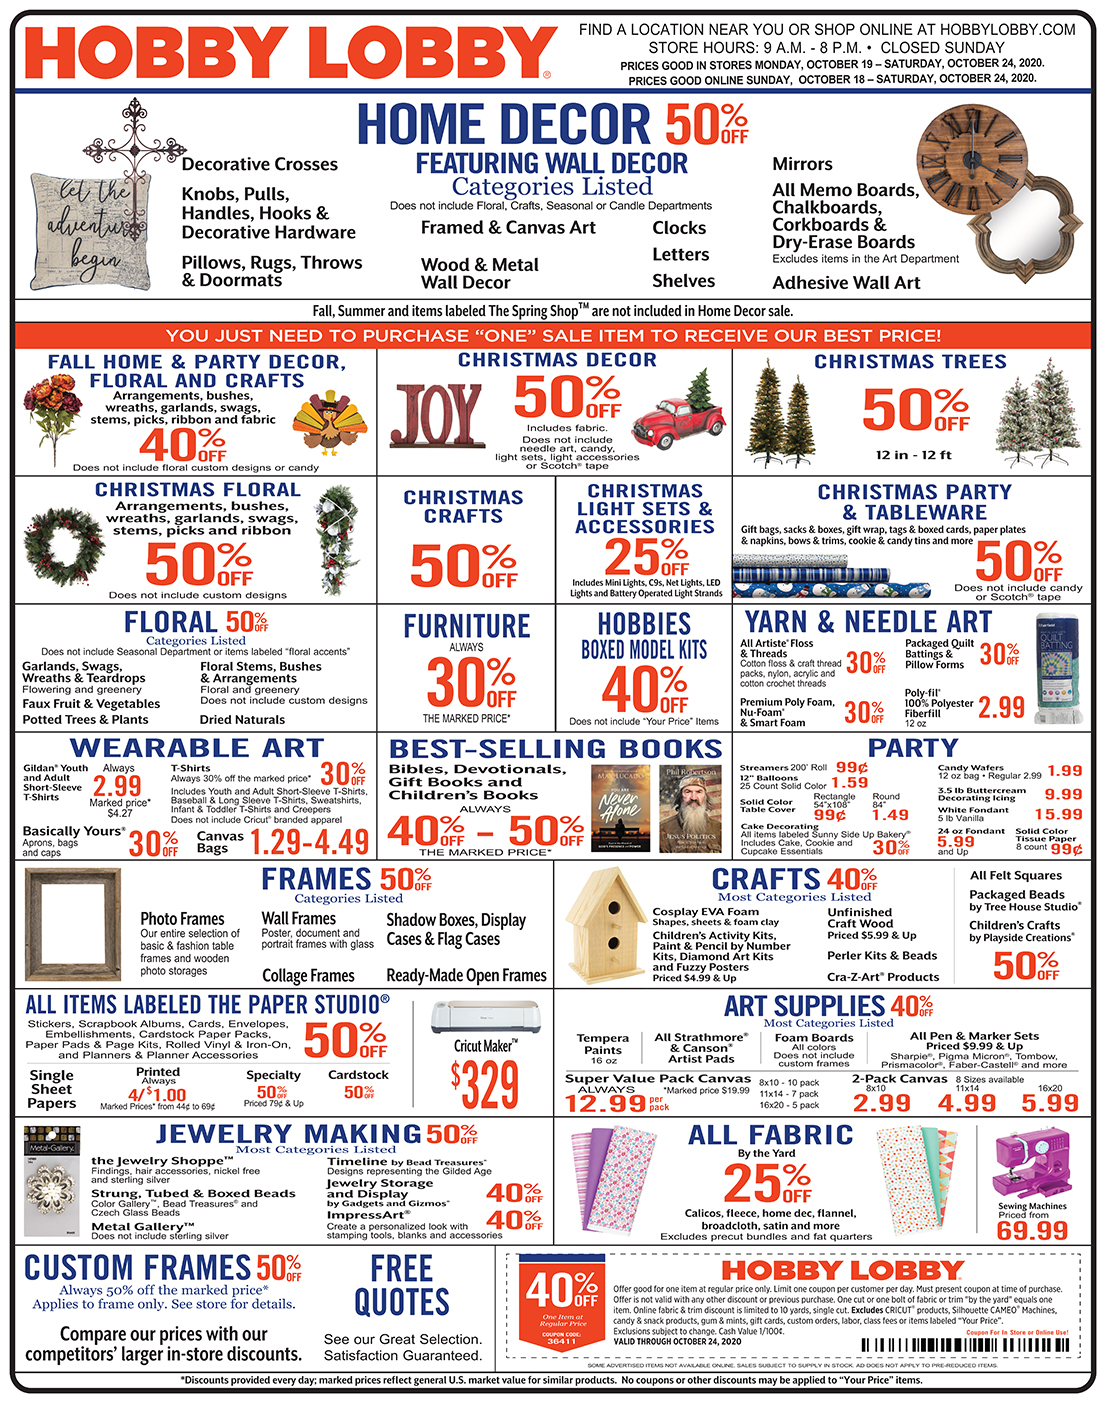 Hobby Lobby Weekly Ad - Prices Good Through October 24th 2020